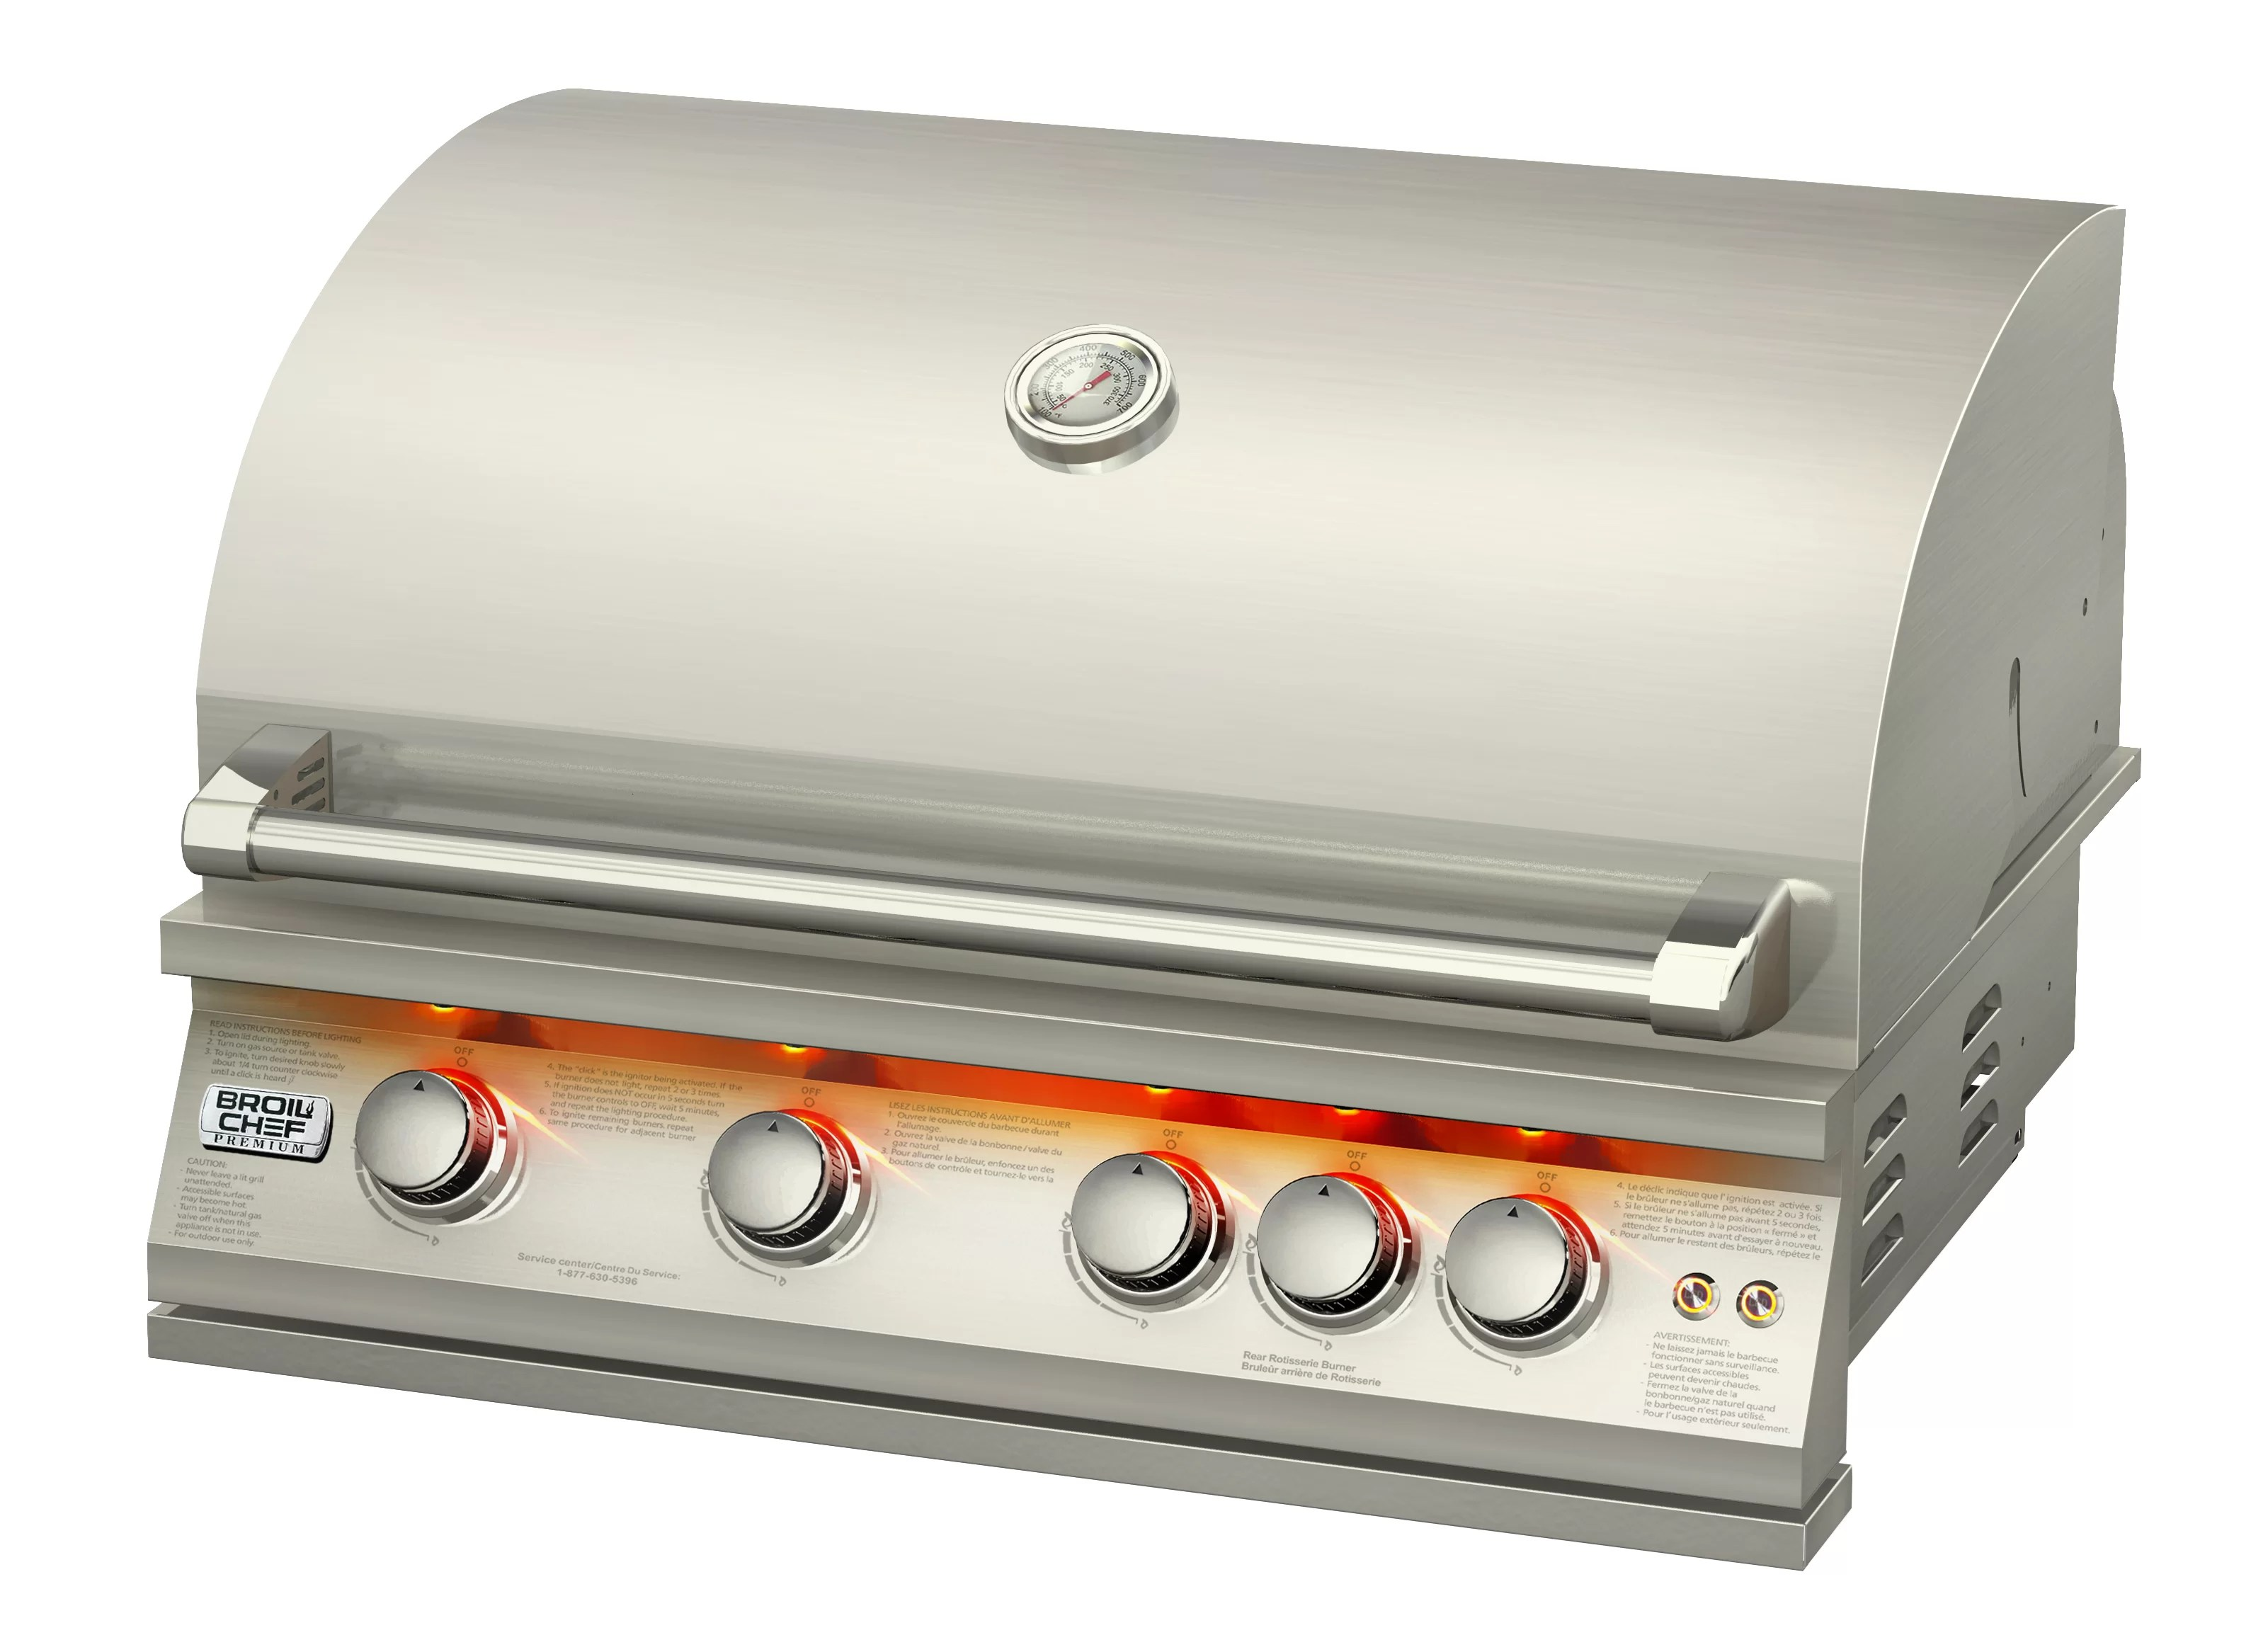 Broilchef 4 Burner Built In Propane Gas Grill Reviews Wayfair Ca